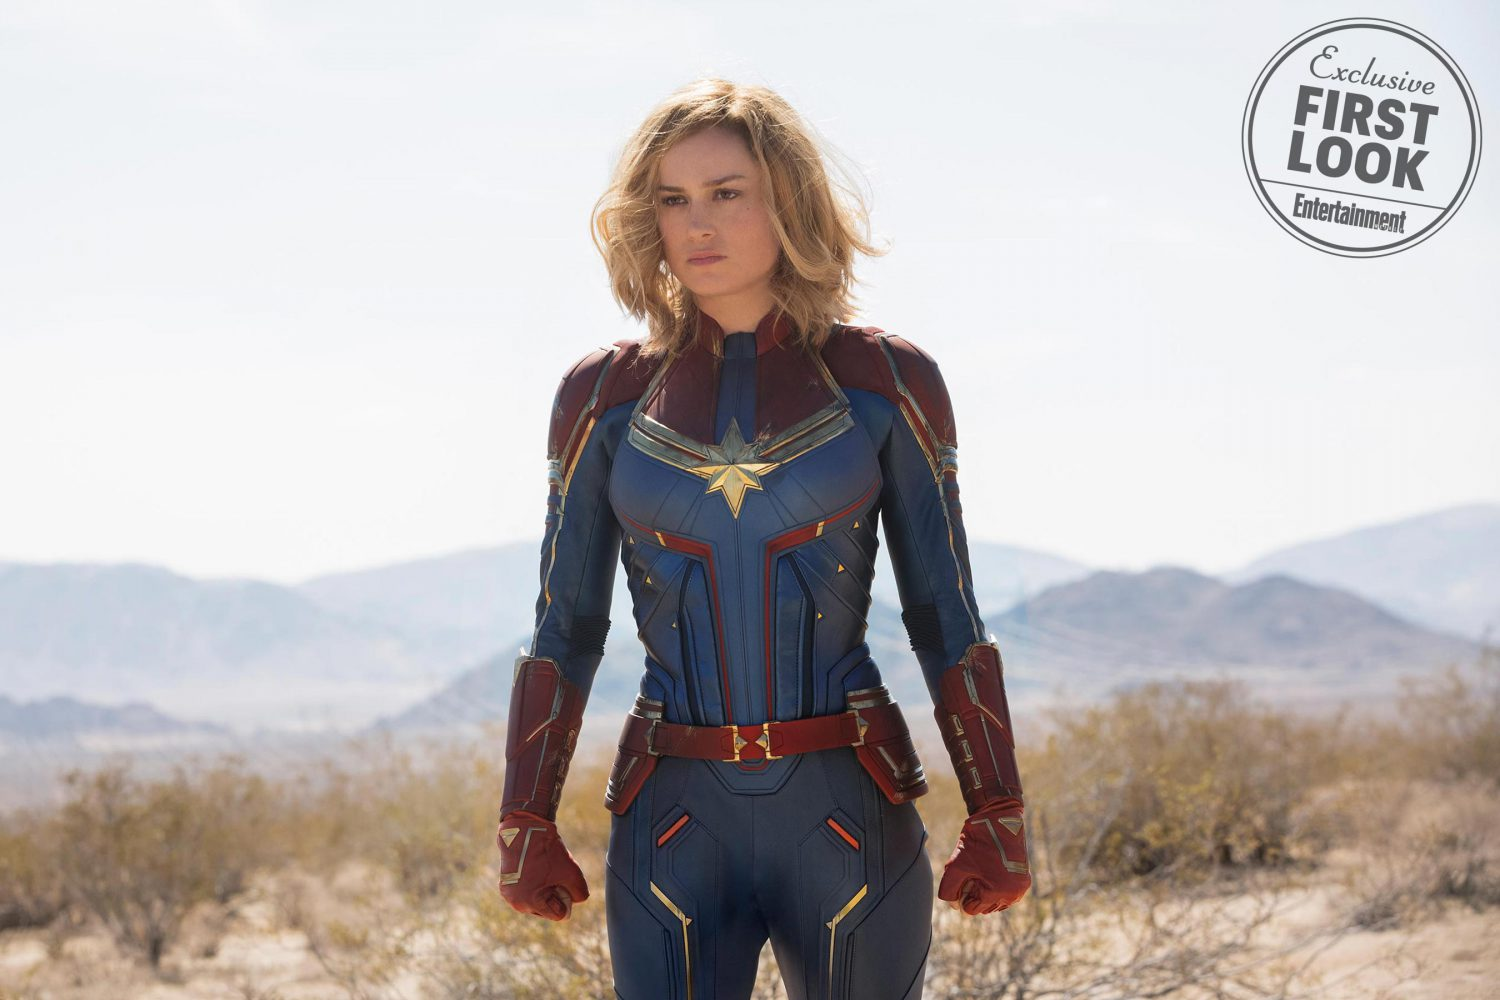 Brie Larson stars as Captain Marvel in the upcoming Marvel Movie, in theaters March 2019.